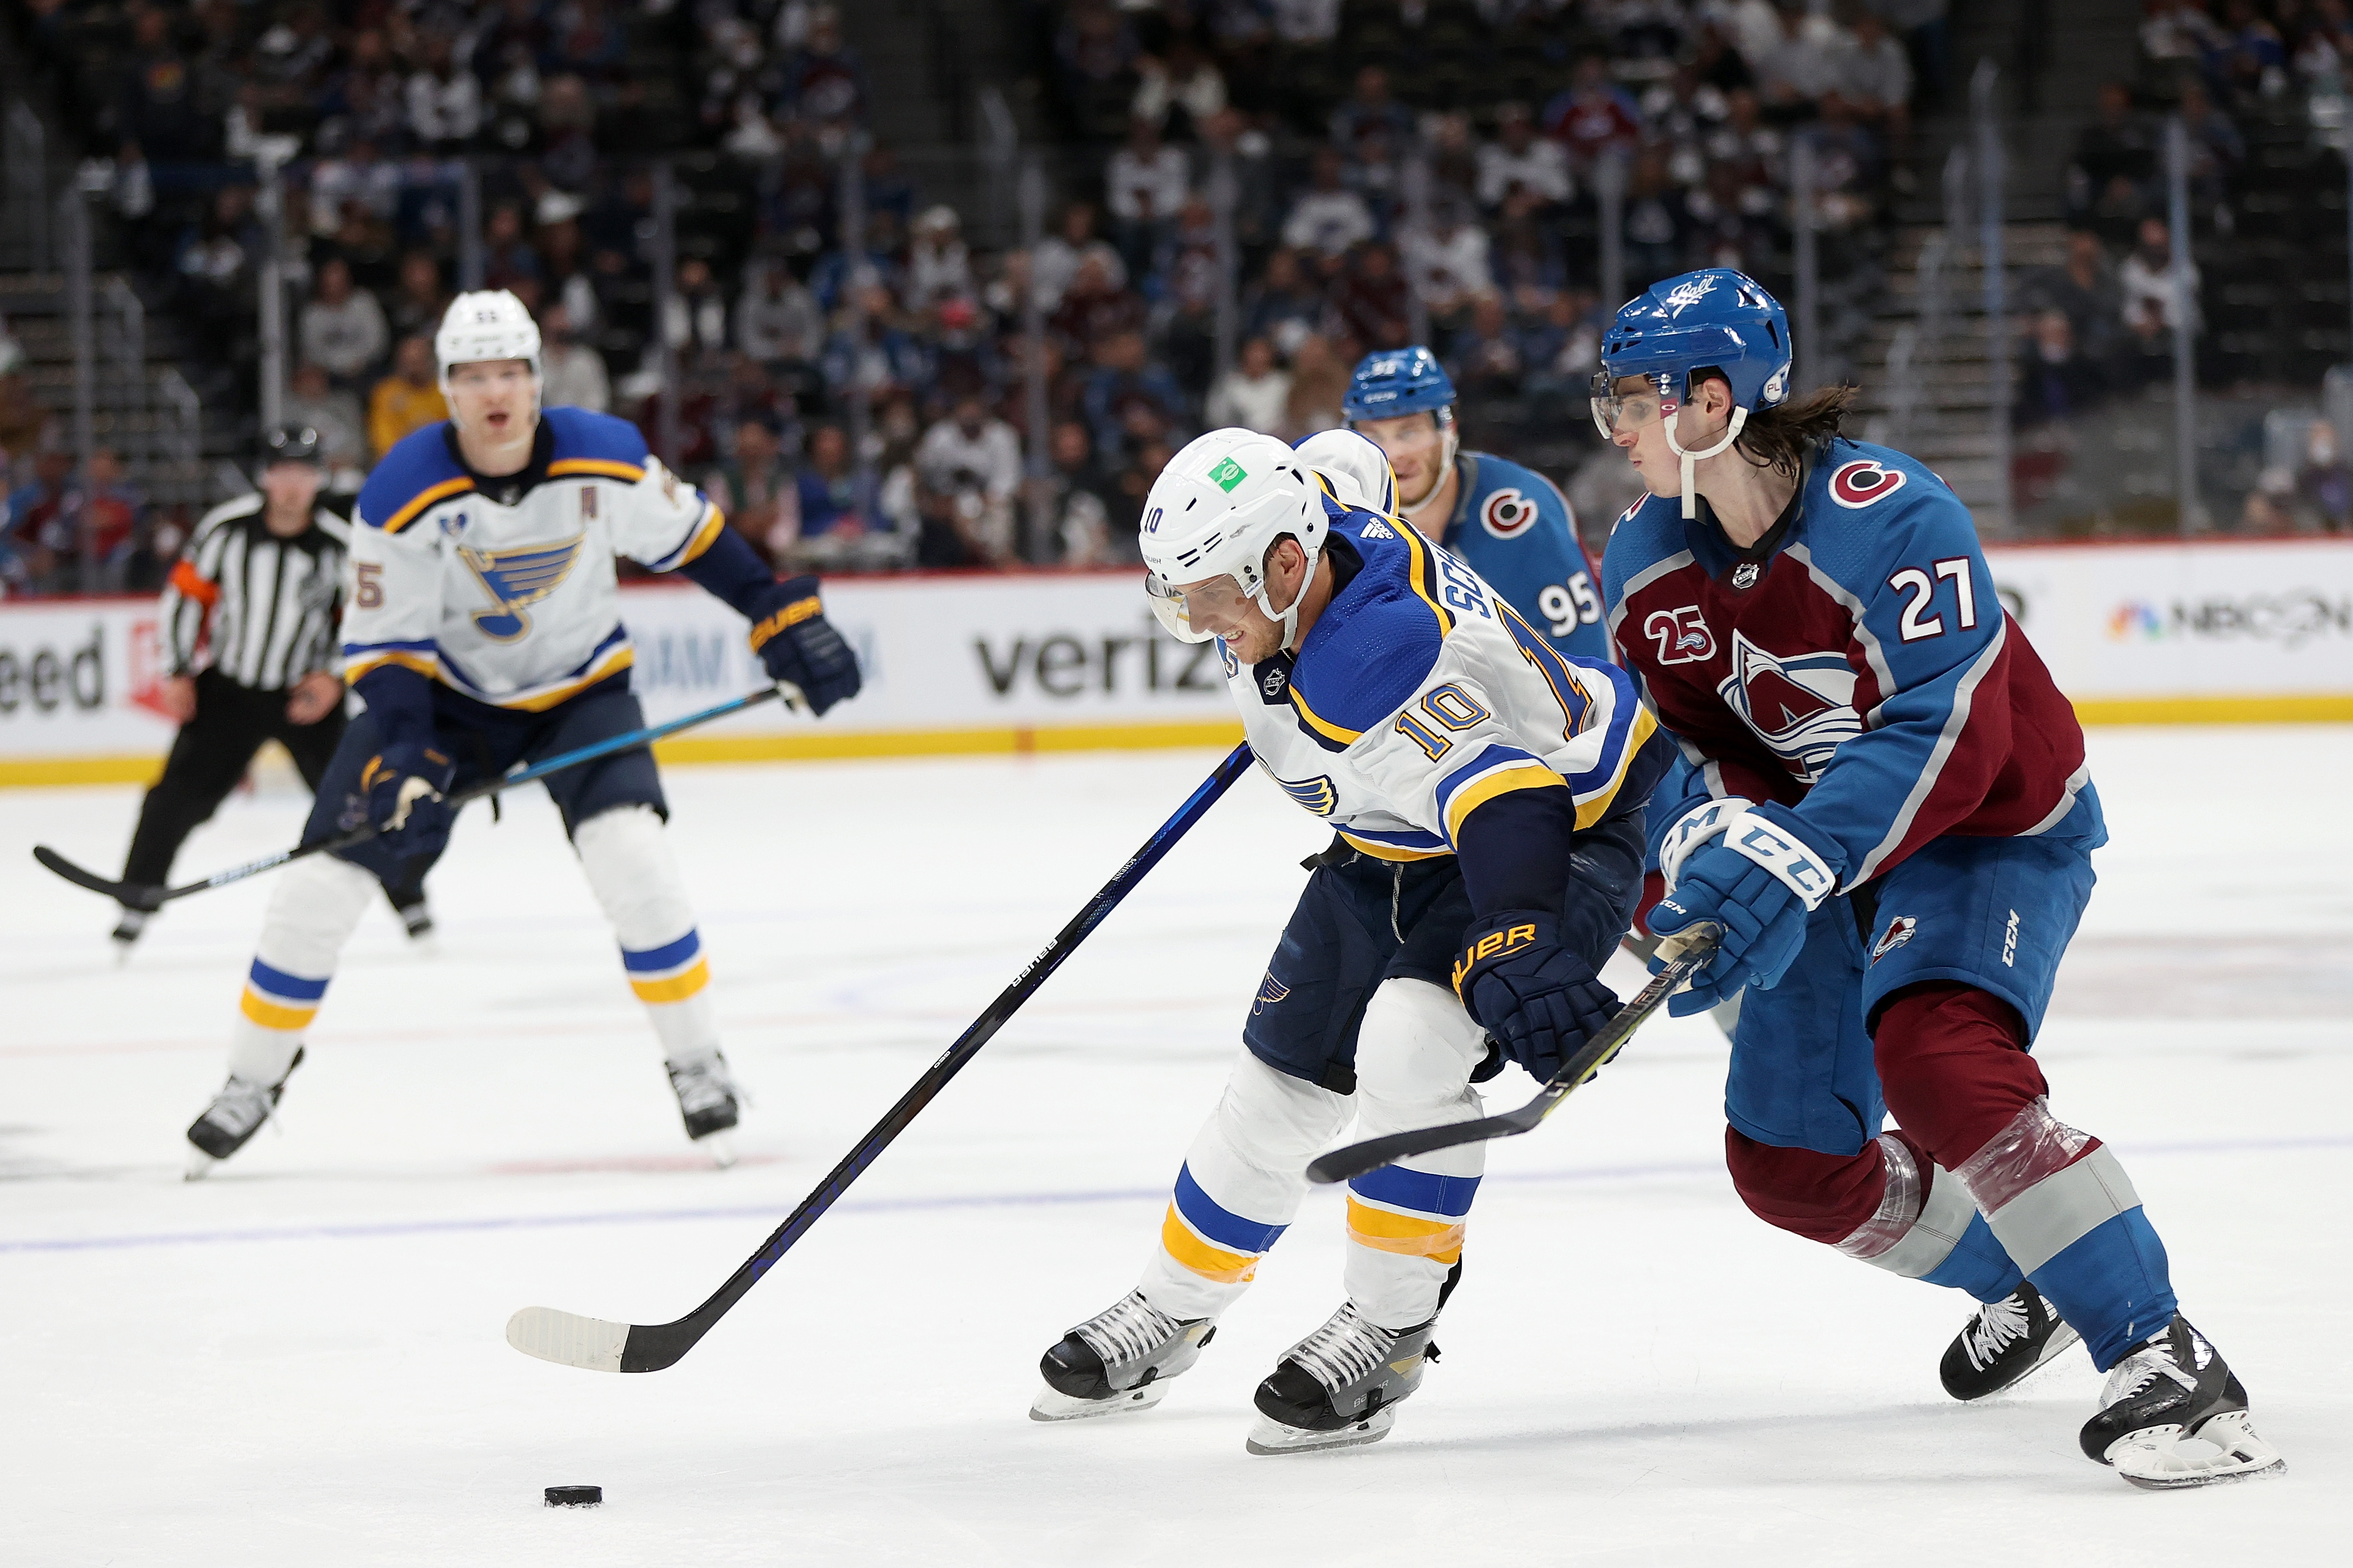 St Louis Blues v Colorado Avalanche - Game Two